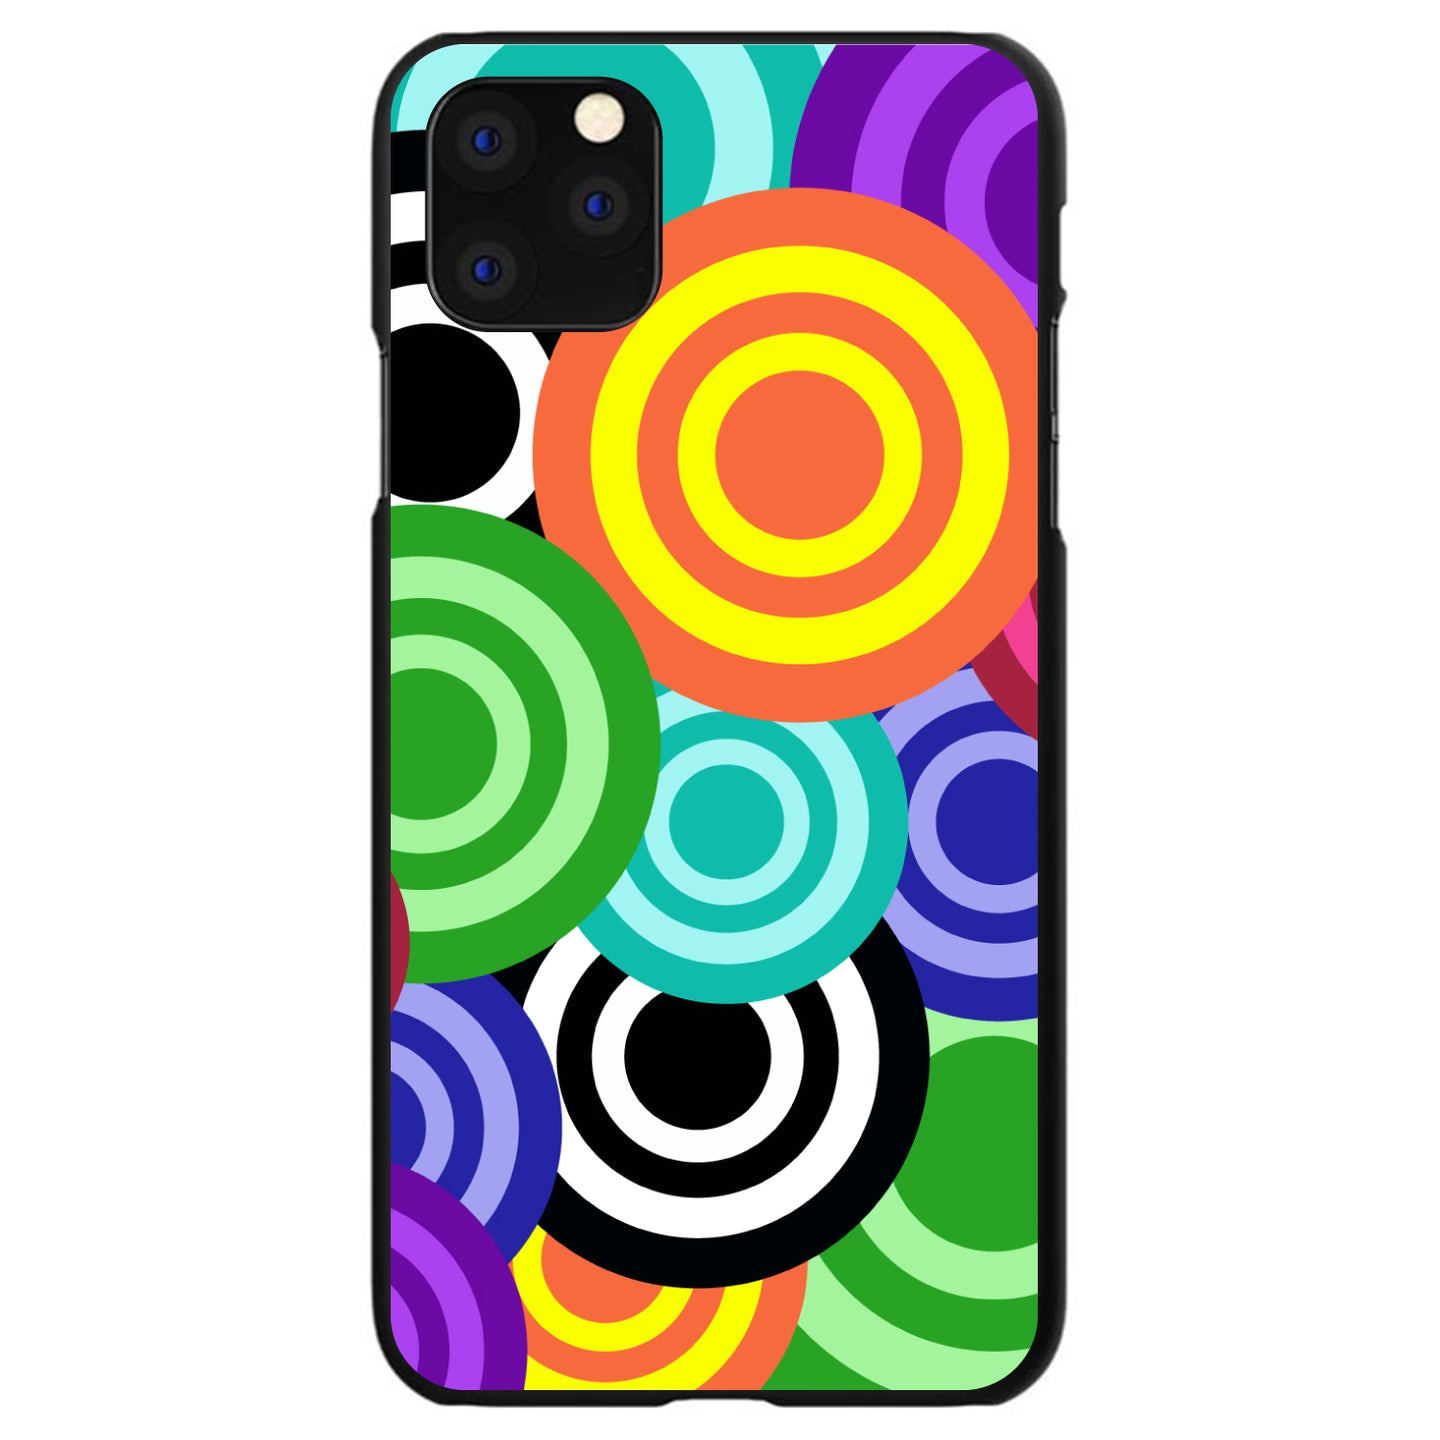 DistinctInk® Hard Plastic Snap-On Case for Apple iPhone - Multi Color Swirls